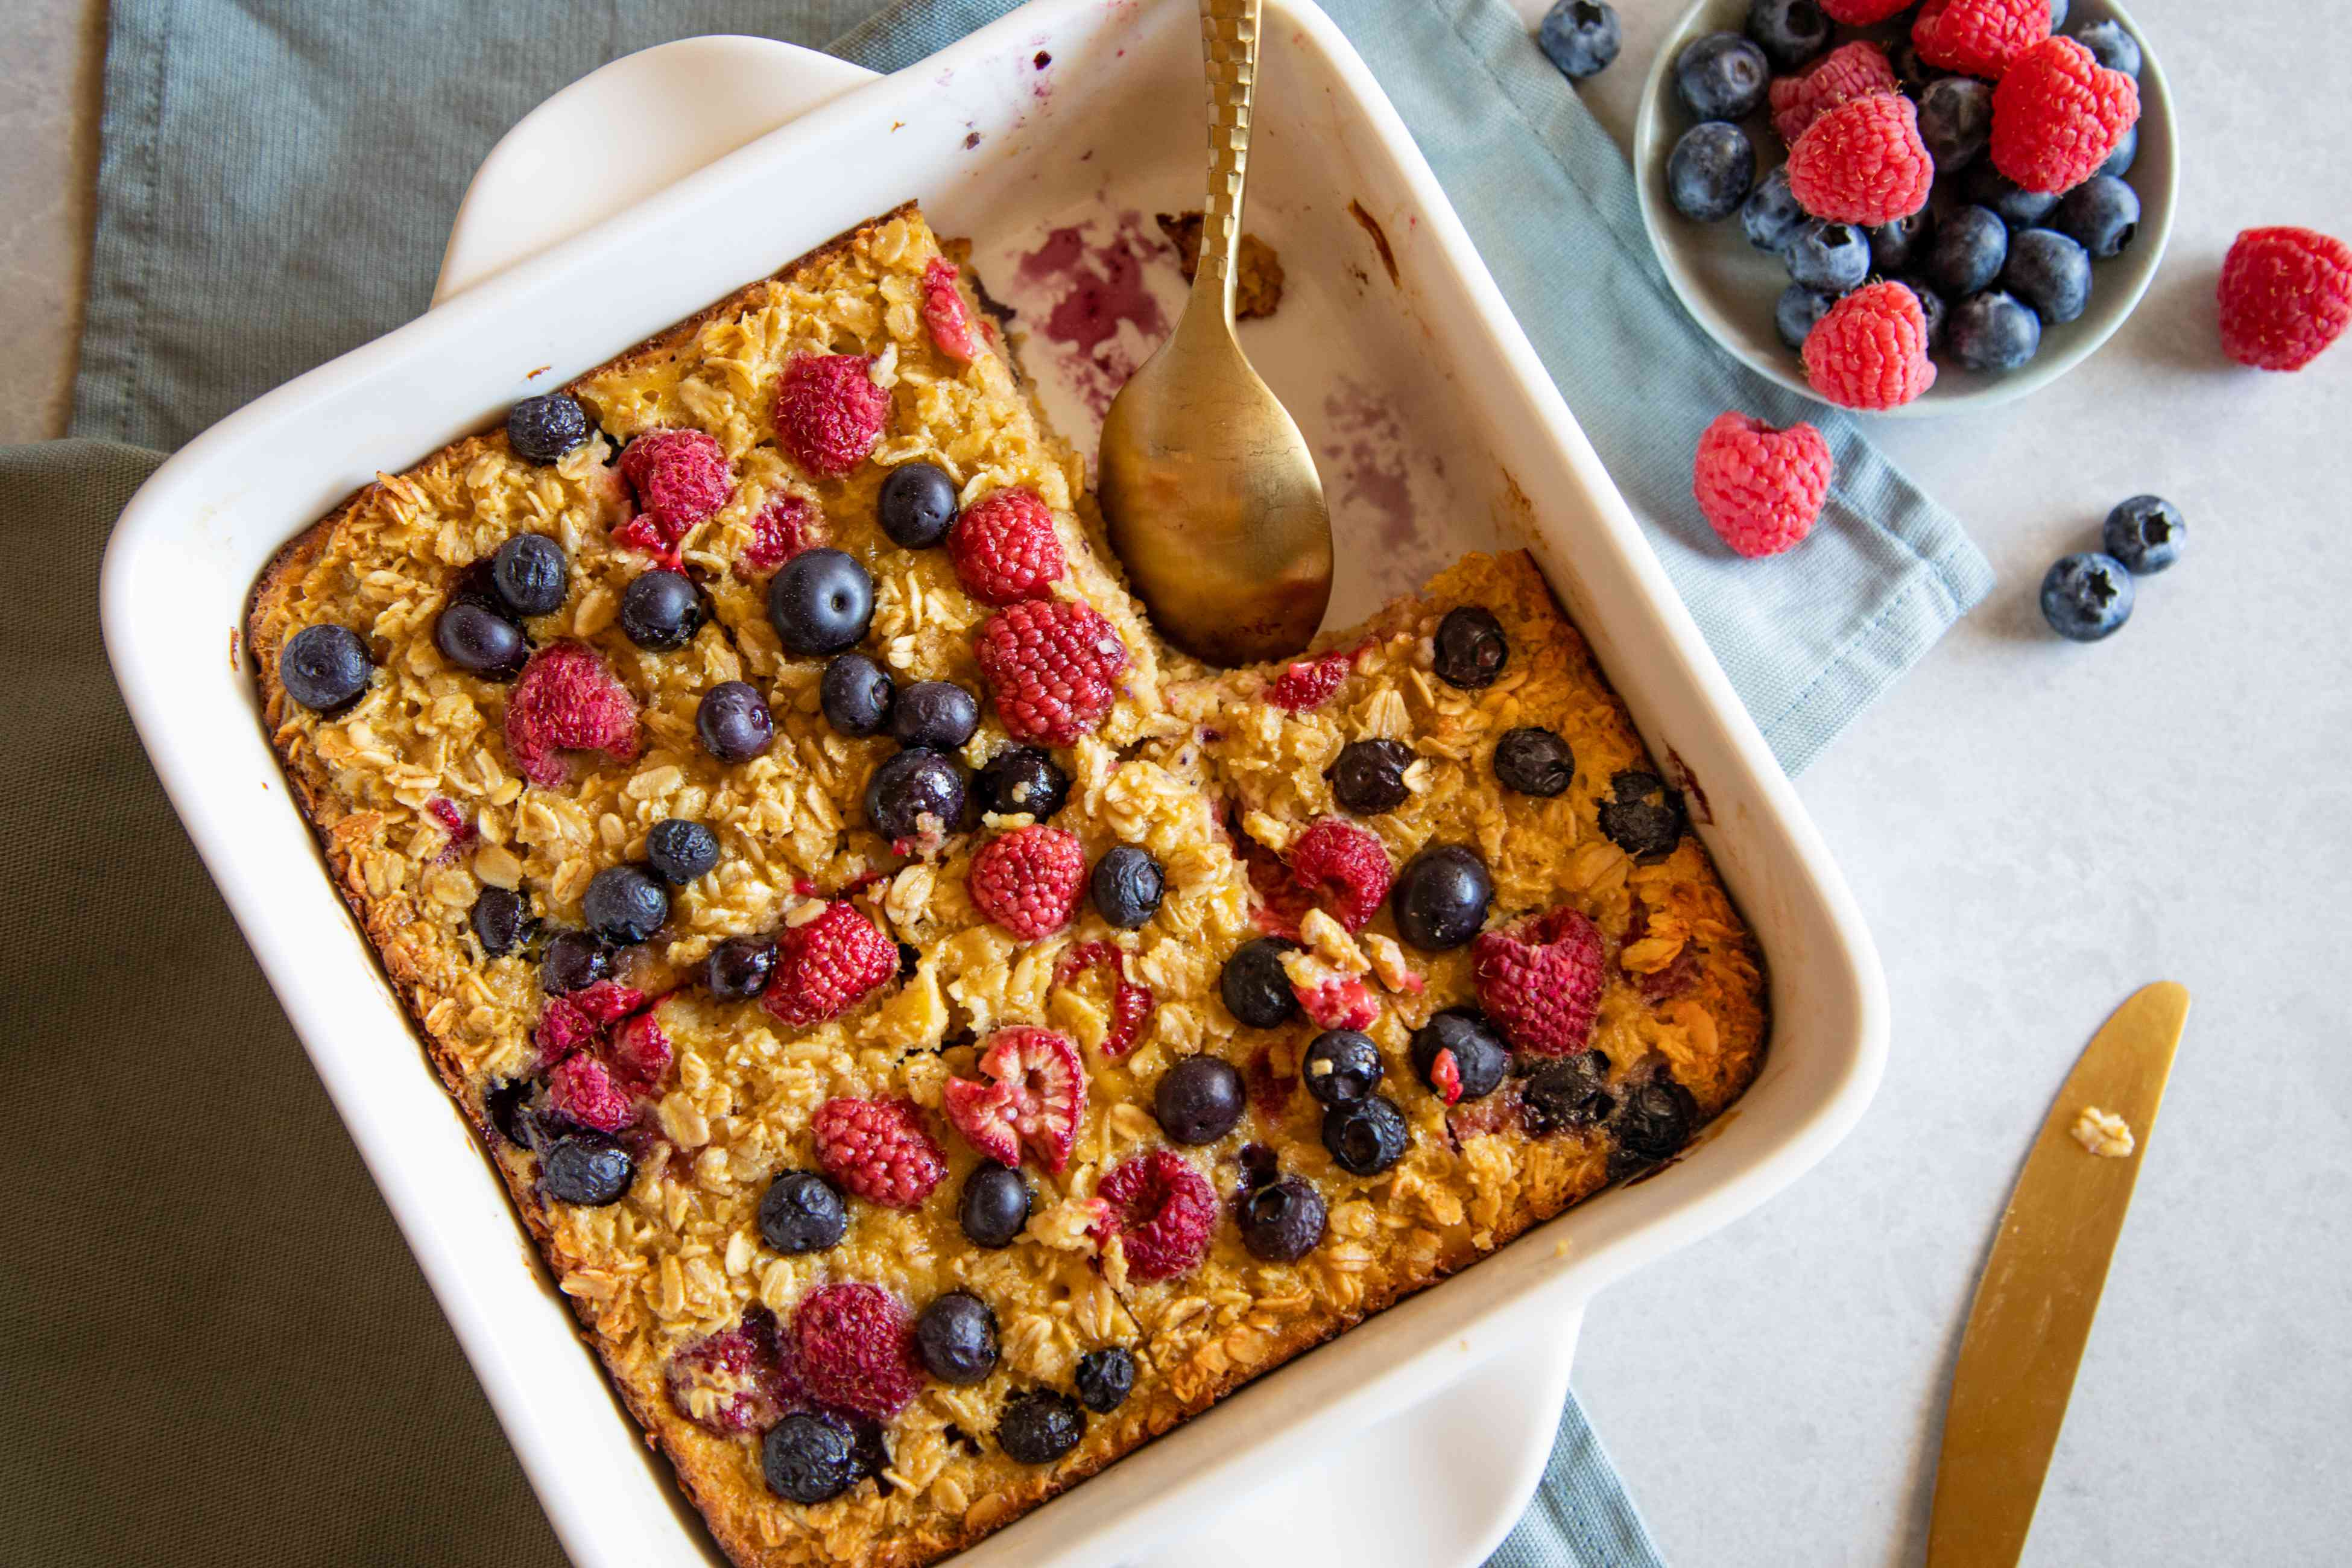 Overhead view of a baking pan with Baked Berry Oatmeal topped with extra berries with a serving removed from the dish.